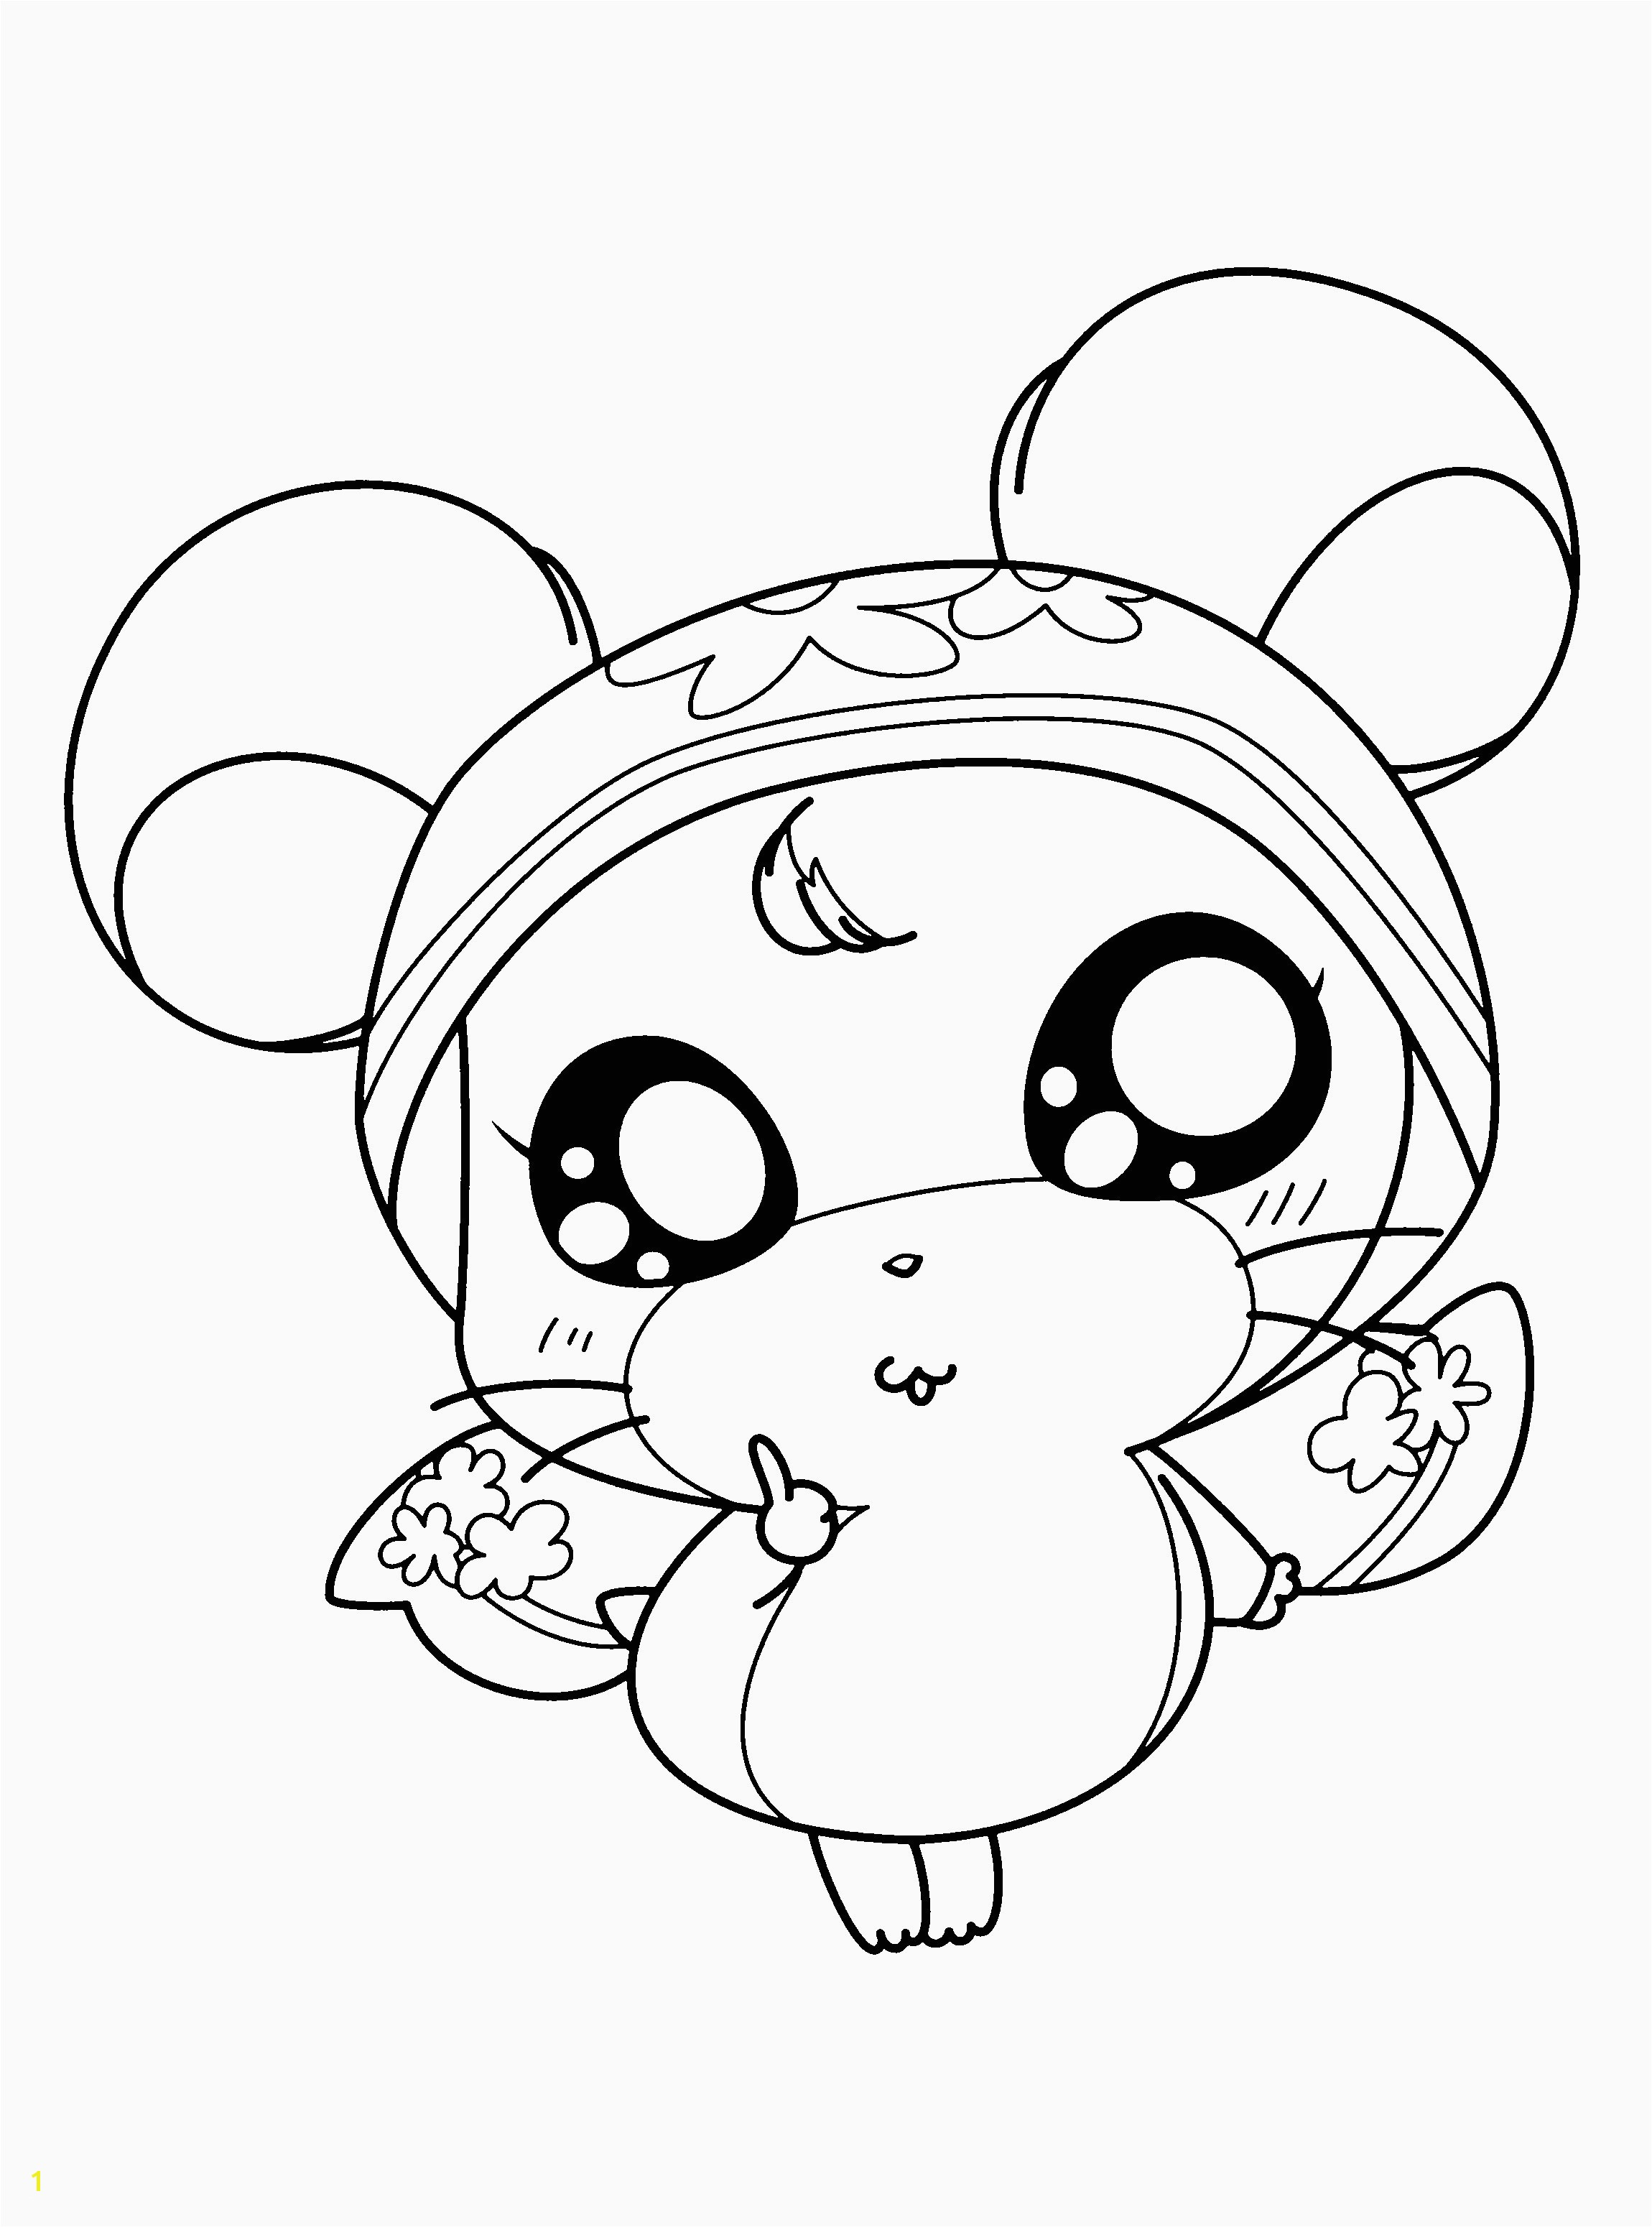 Morkie Coloring Pages Printable Color Pages for Kids Coloring Pages